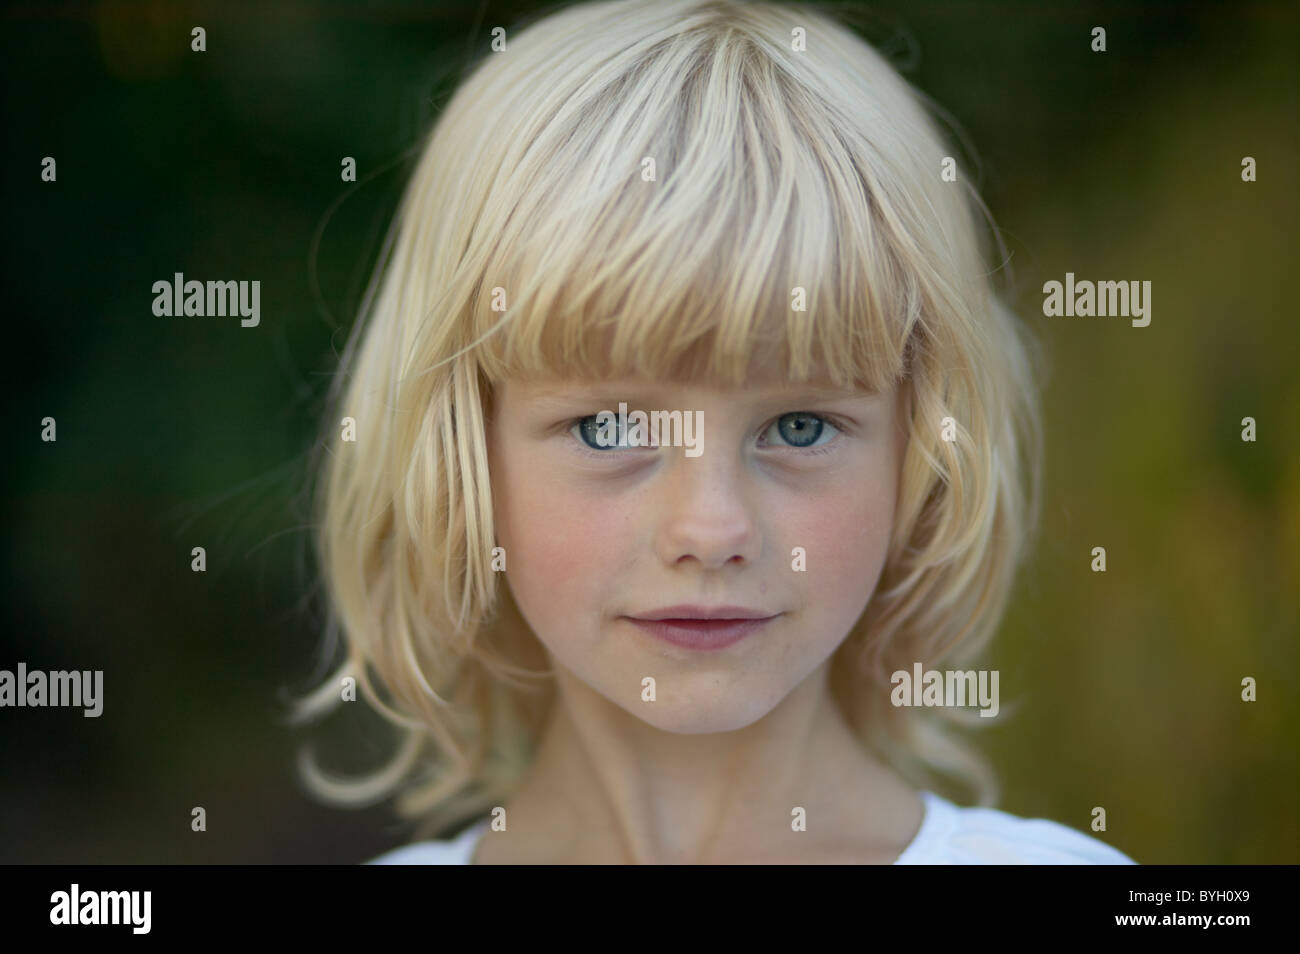 Portrait of blonde girl outdoors - Stock Image